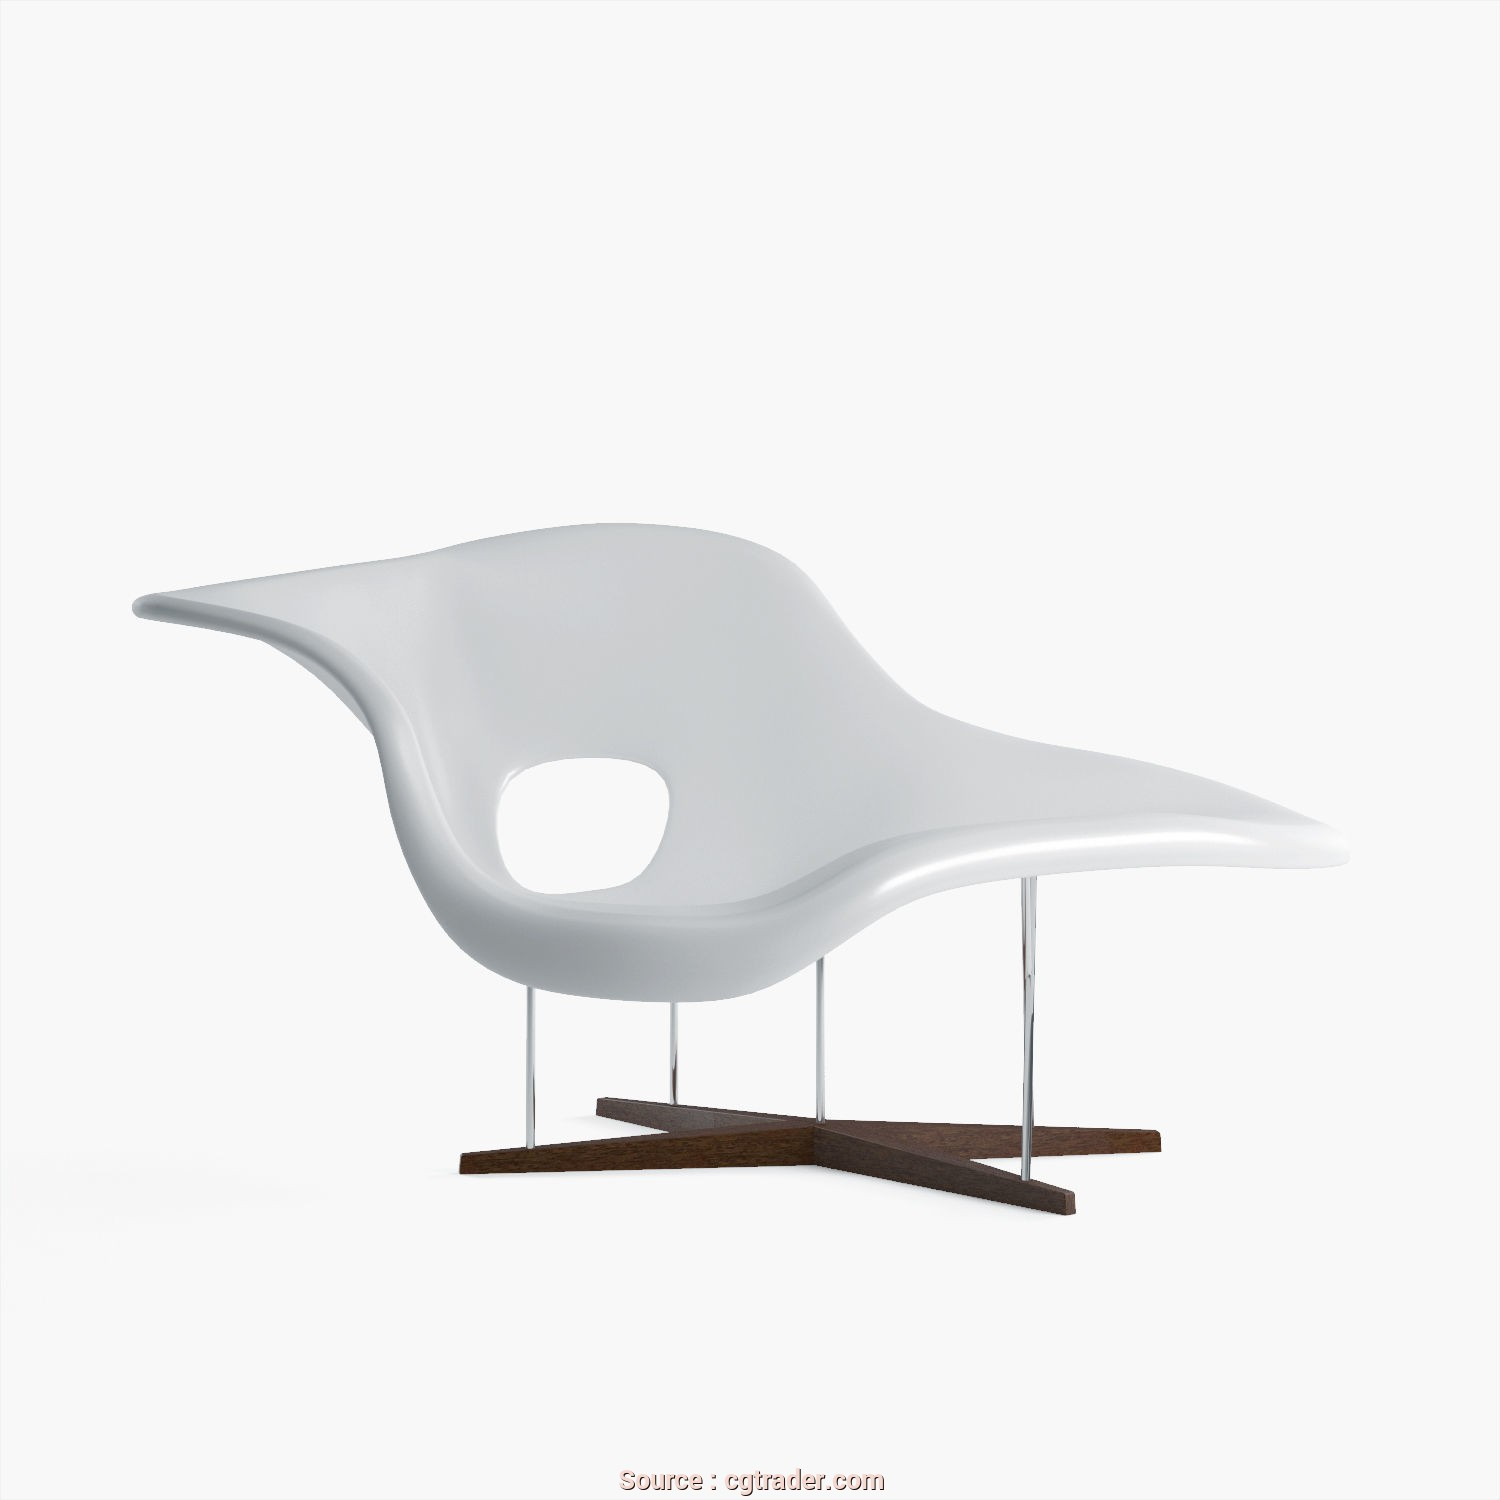 Chaise Longue In Dwg, Ideale La Chaise Vitra, 3D Model